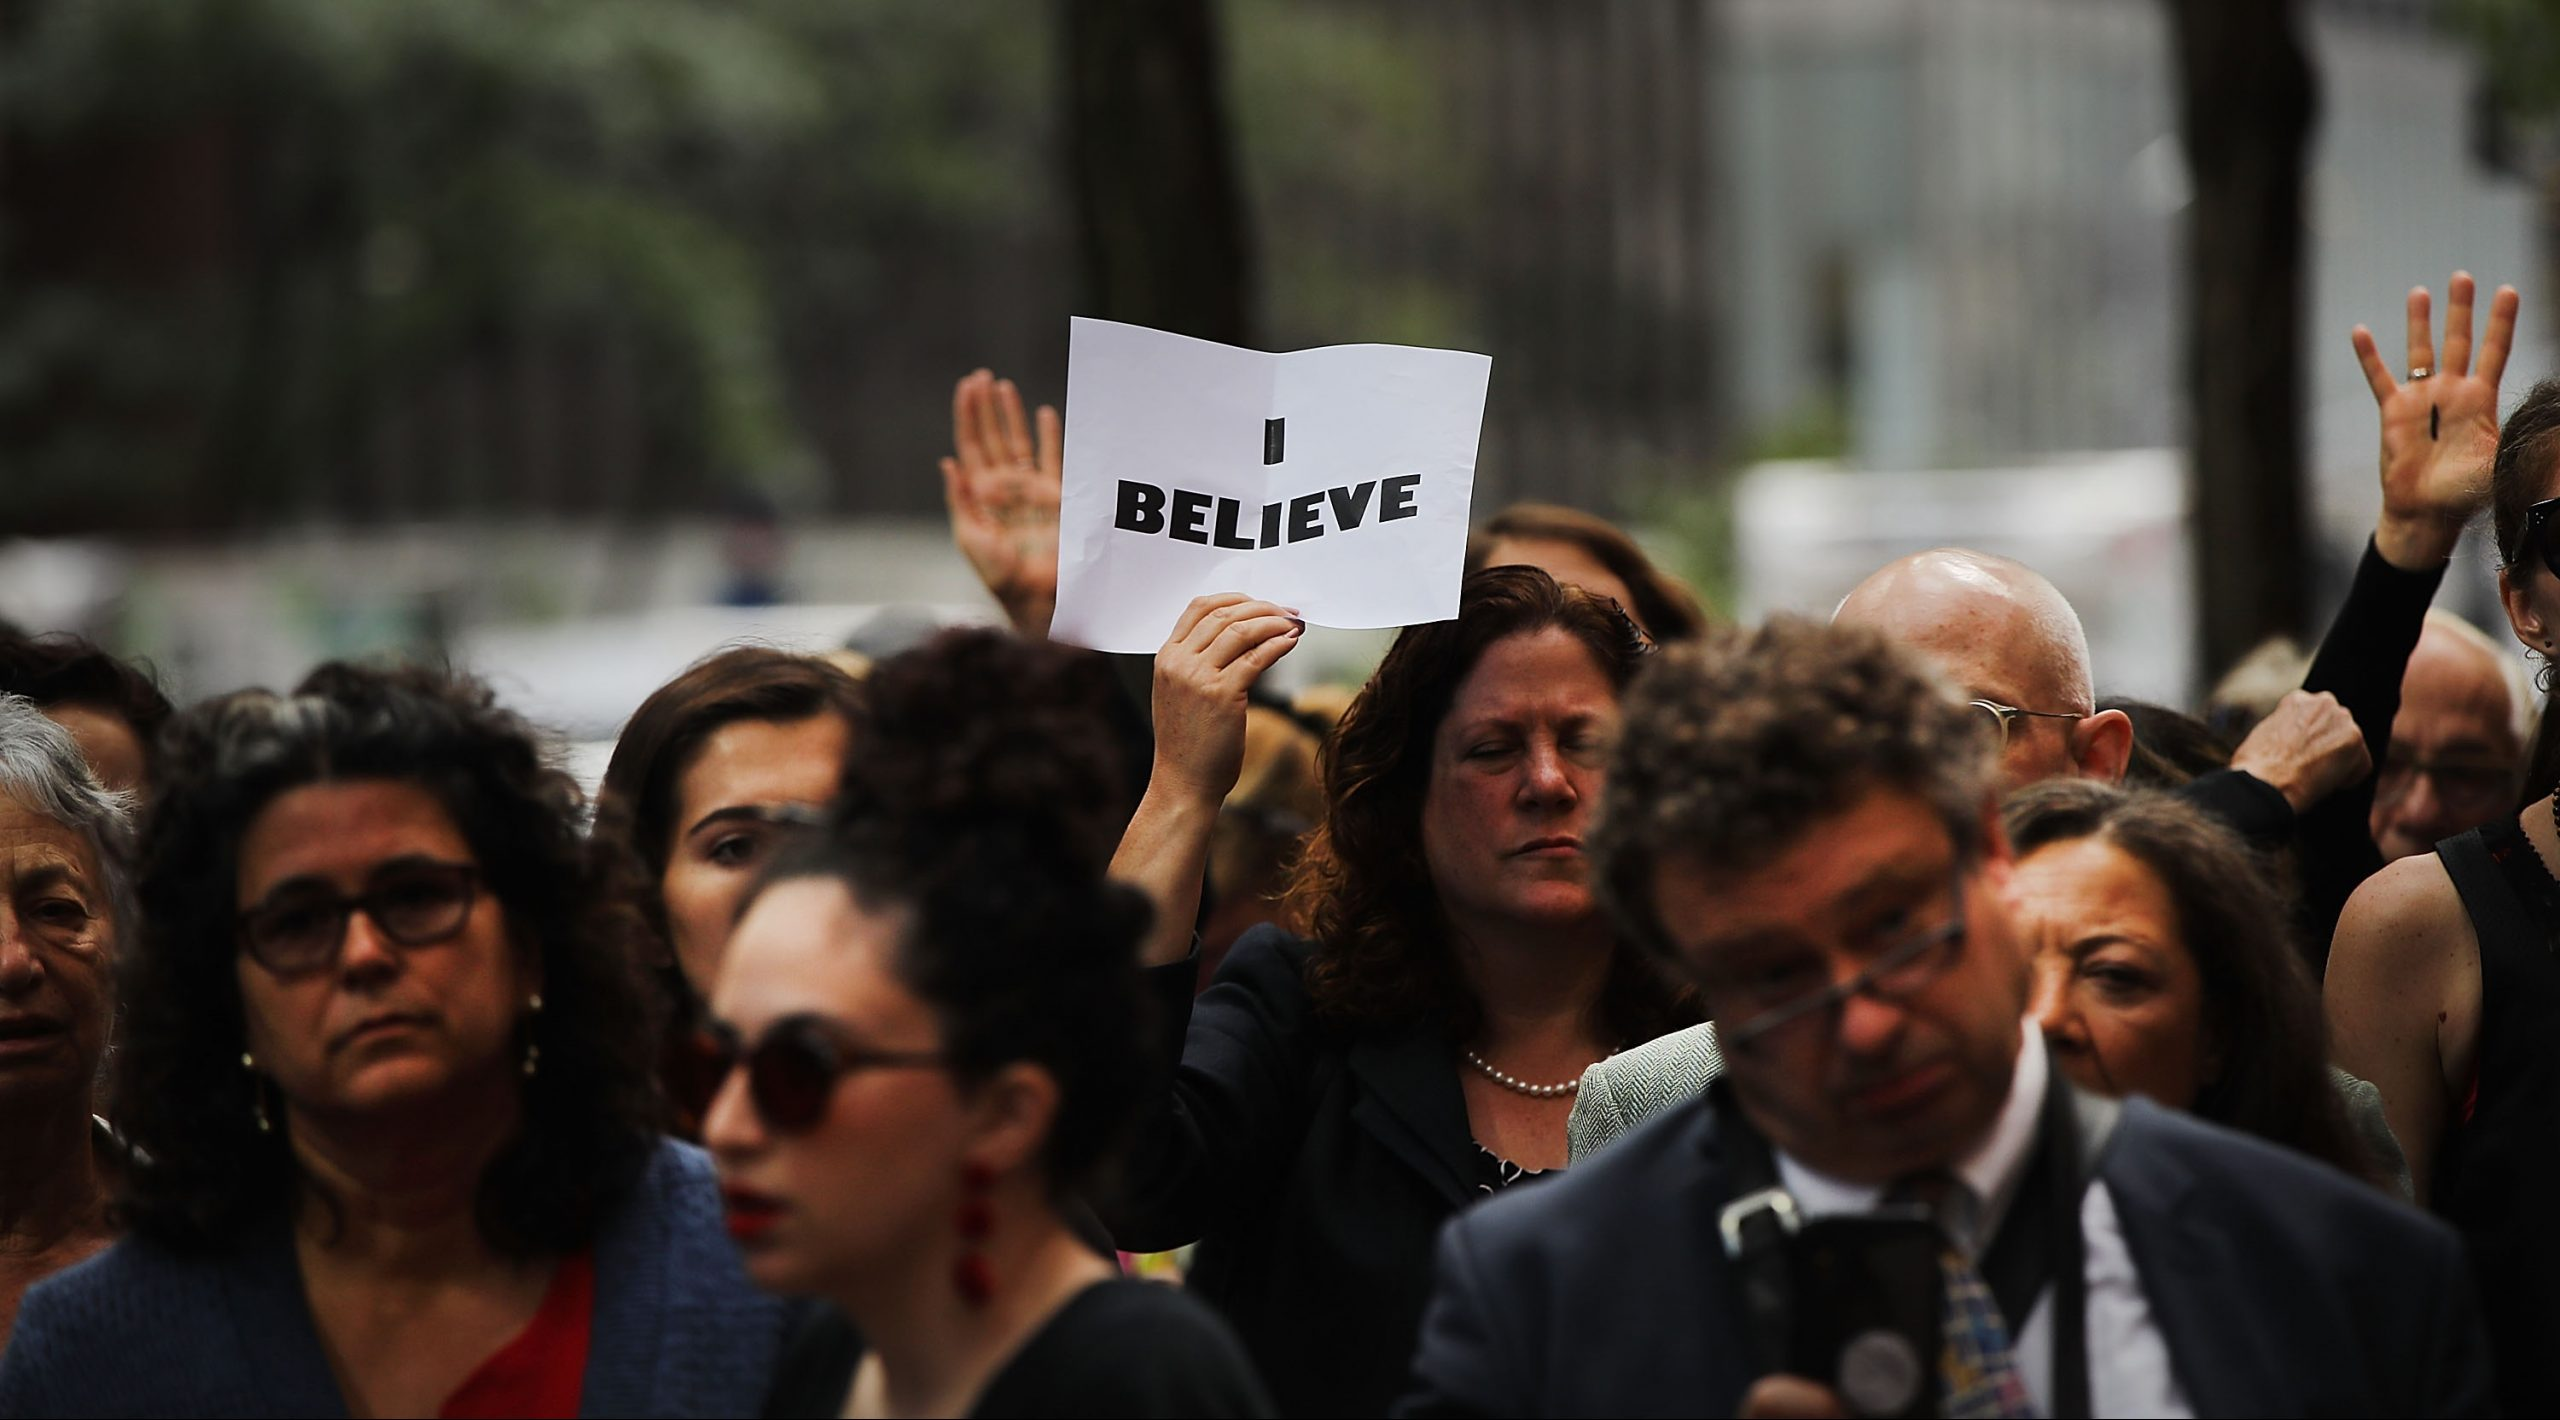 For #MeToo transgressors, the only cure is banishment